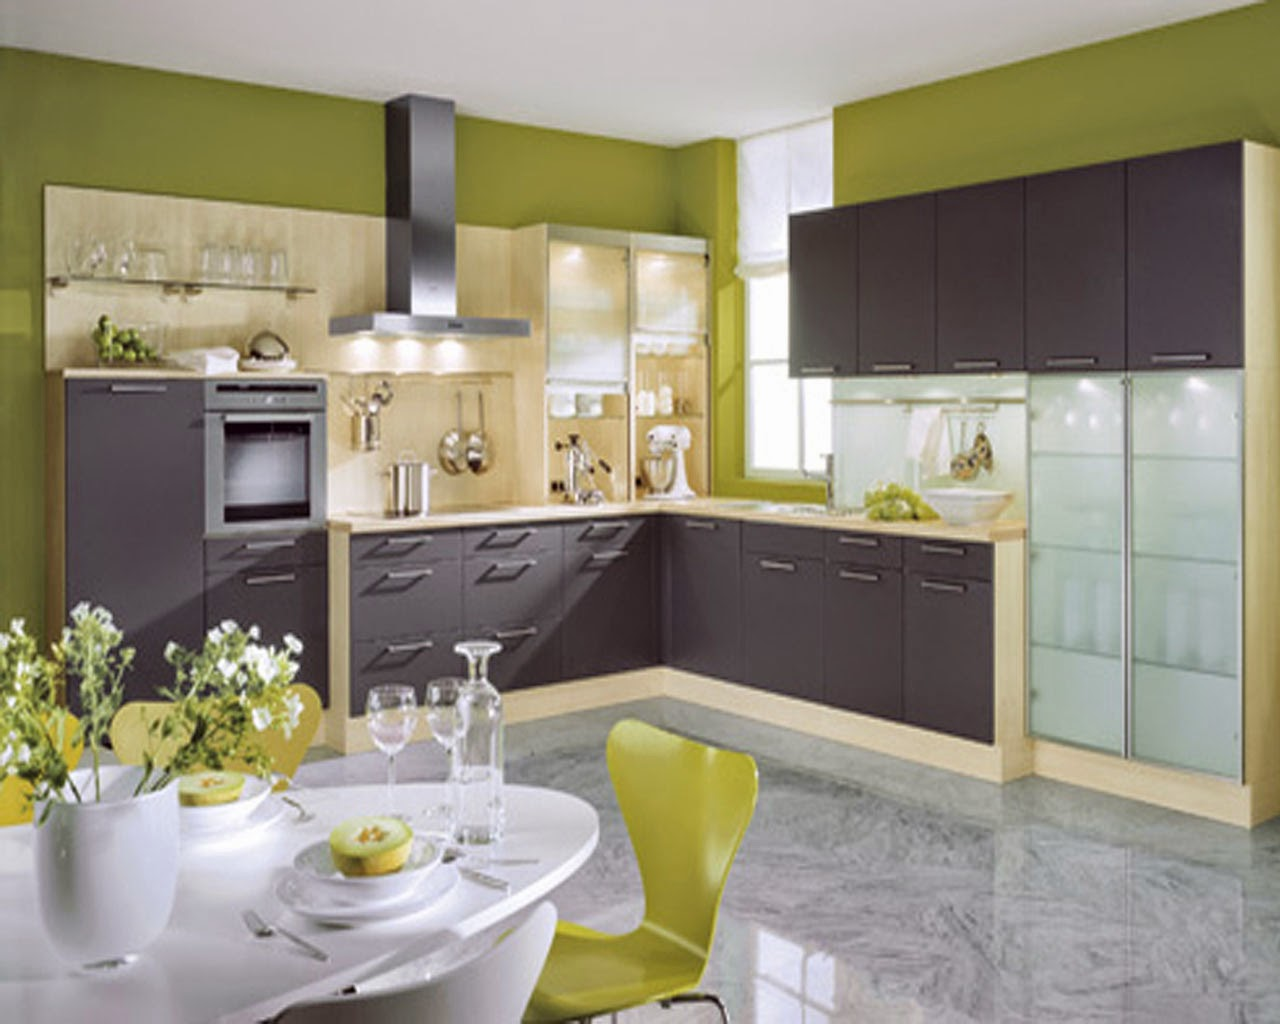 Kitchen designing ideas 2014 freshnist design for Popular kitchen designs